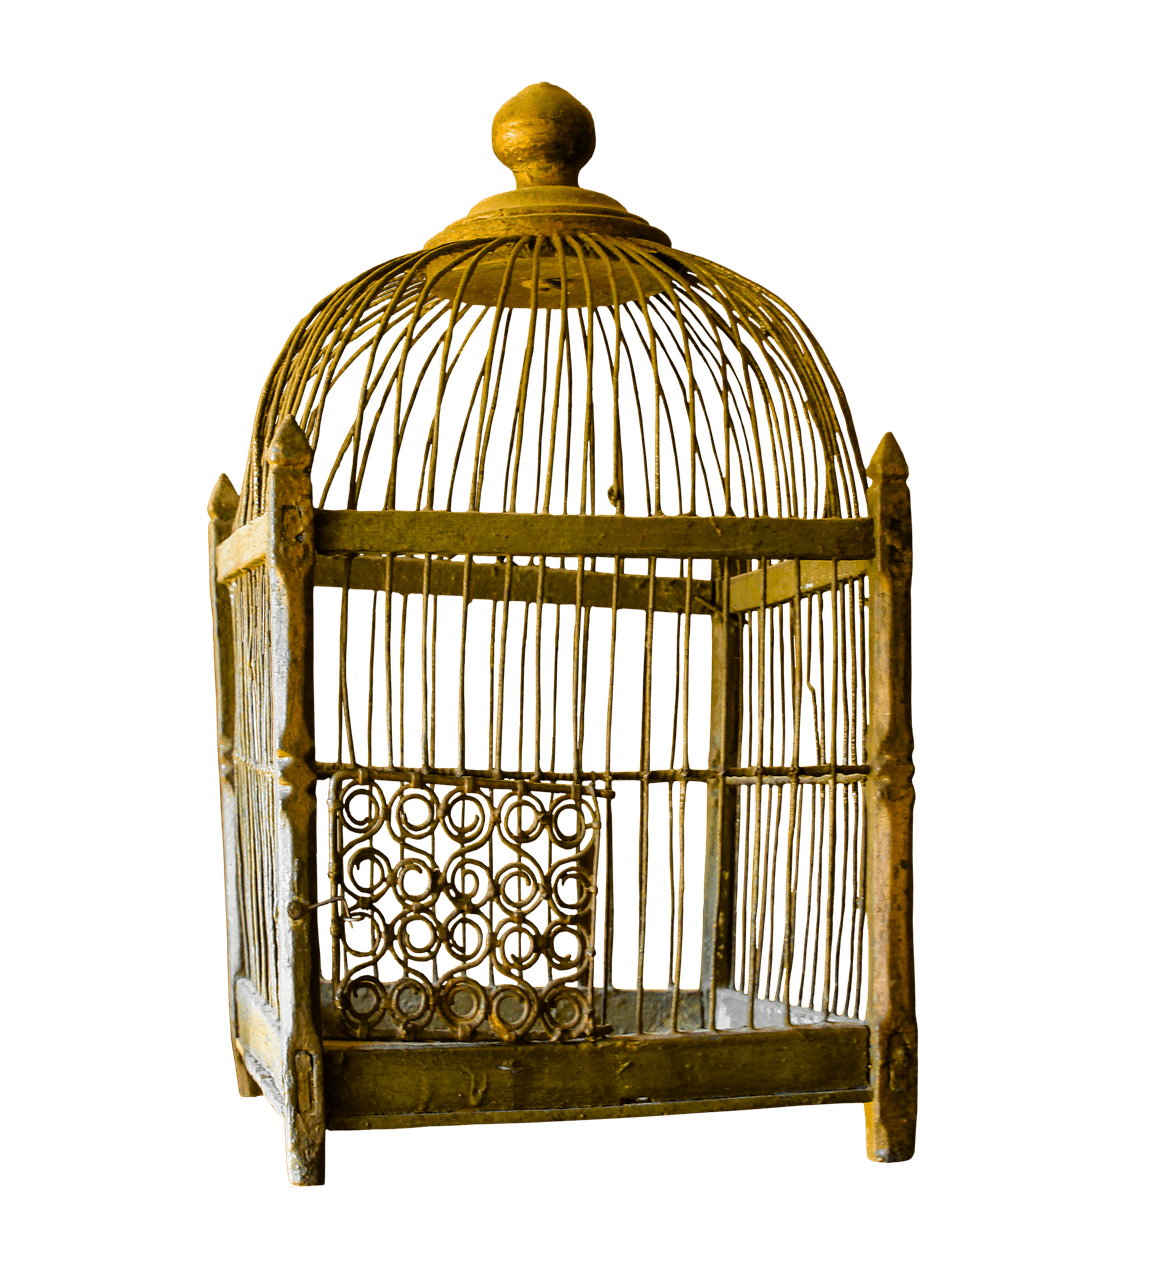 Cage clipart transparent background. Bird png stickpng